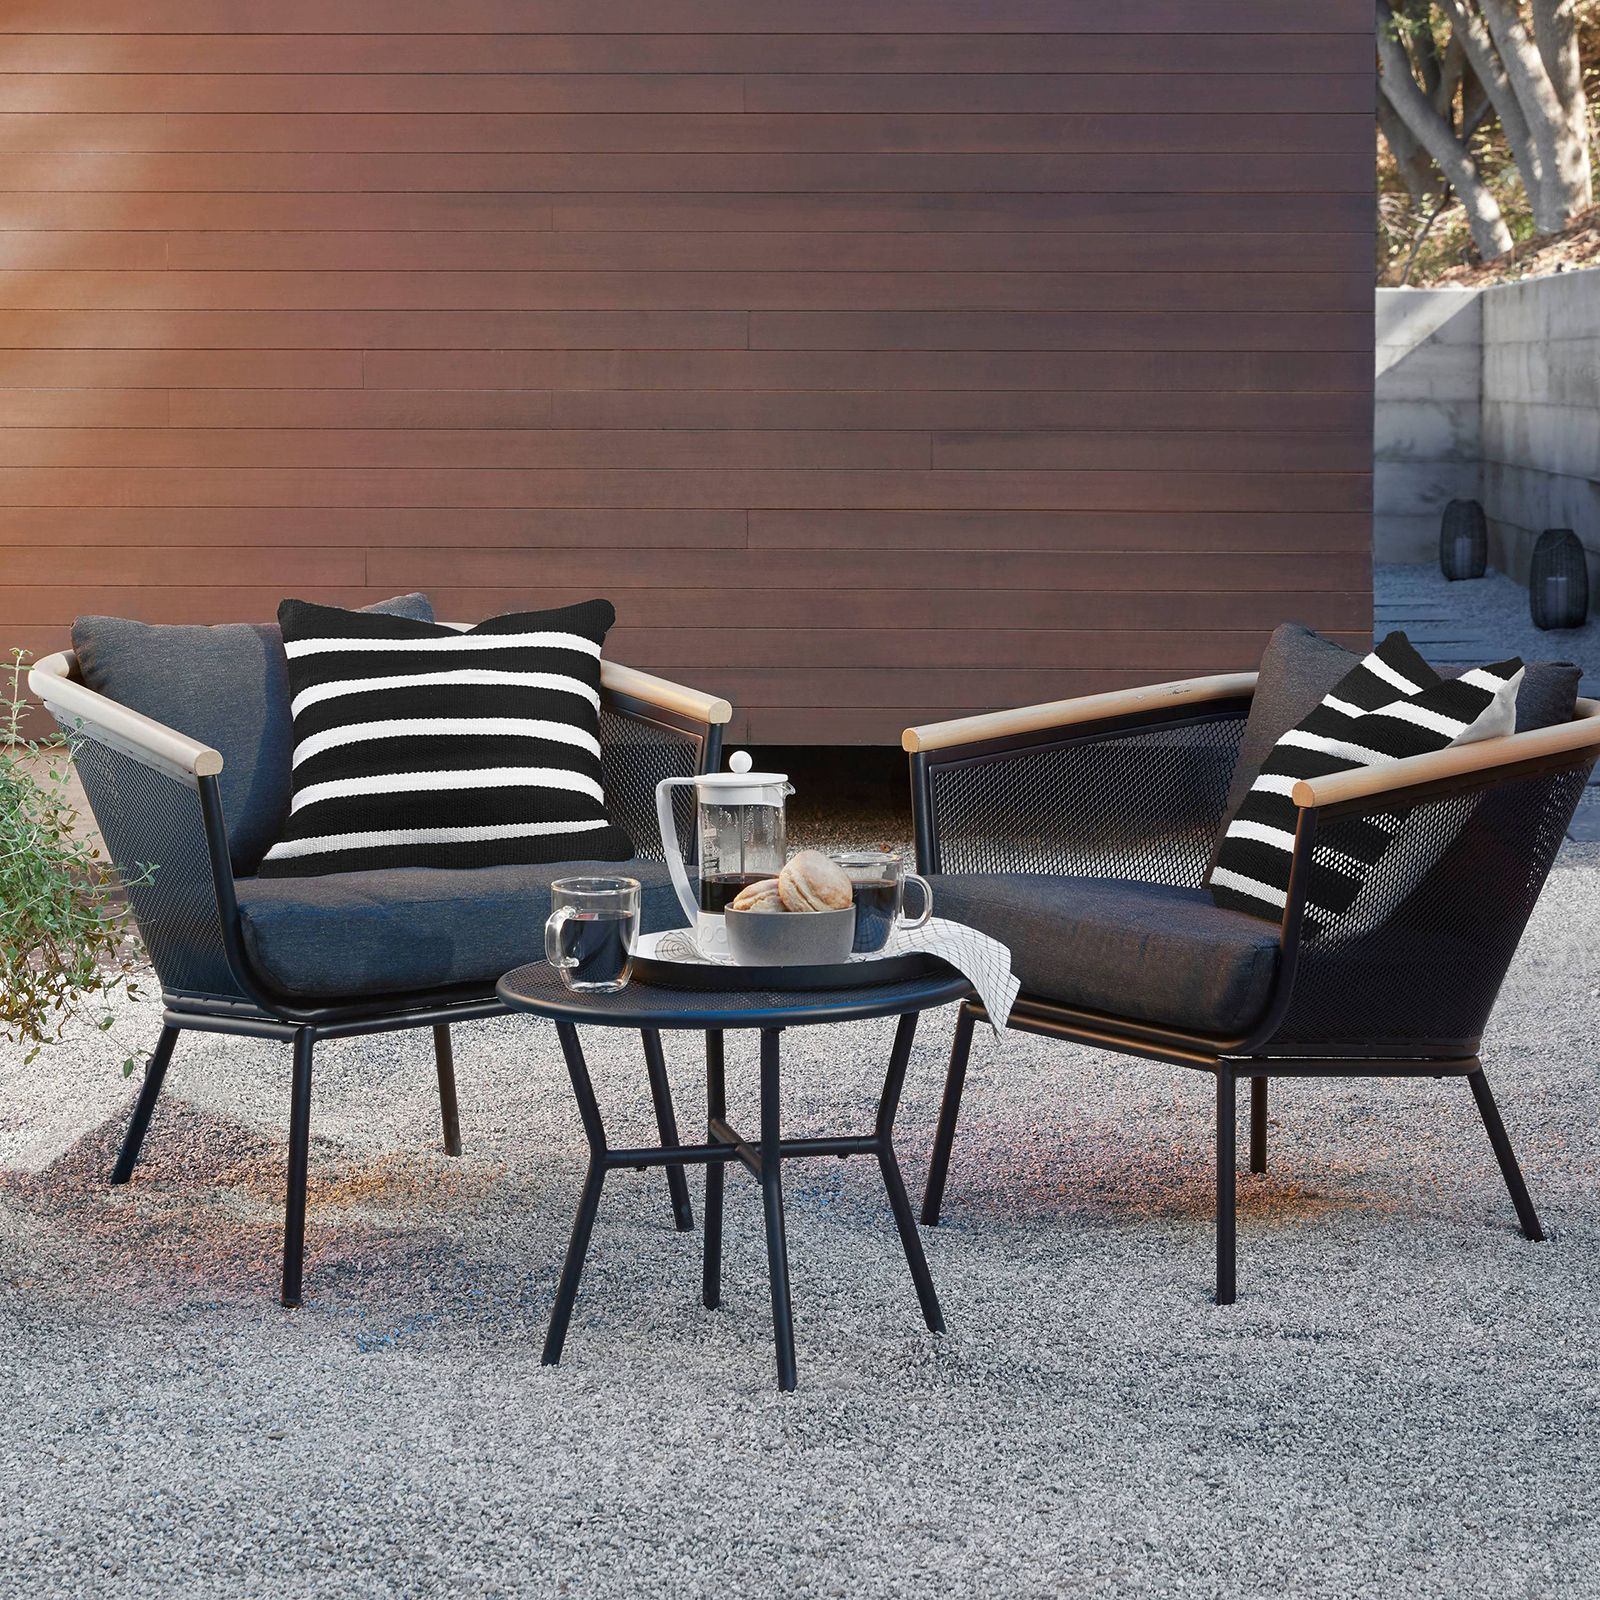 Fabulous Black + White Outdoor Finds at Target - 3-Piece Chat Set